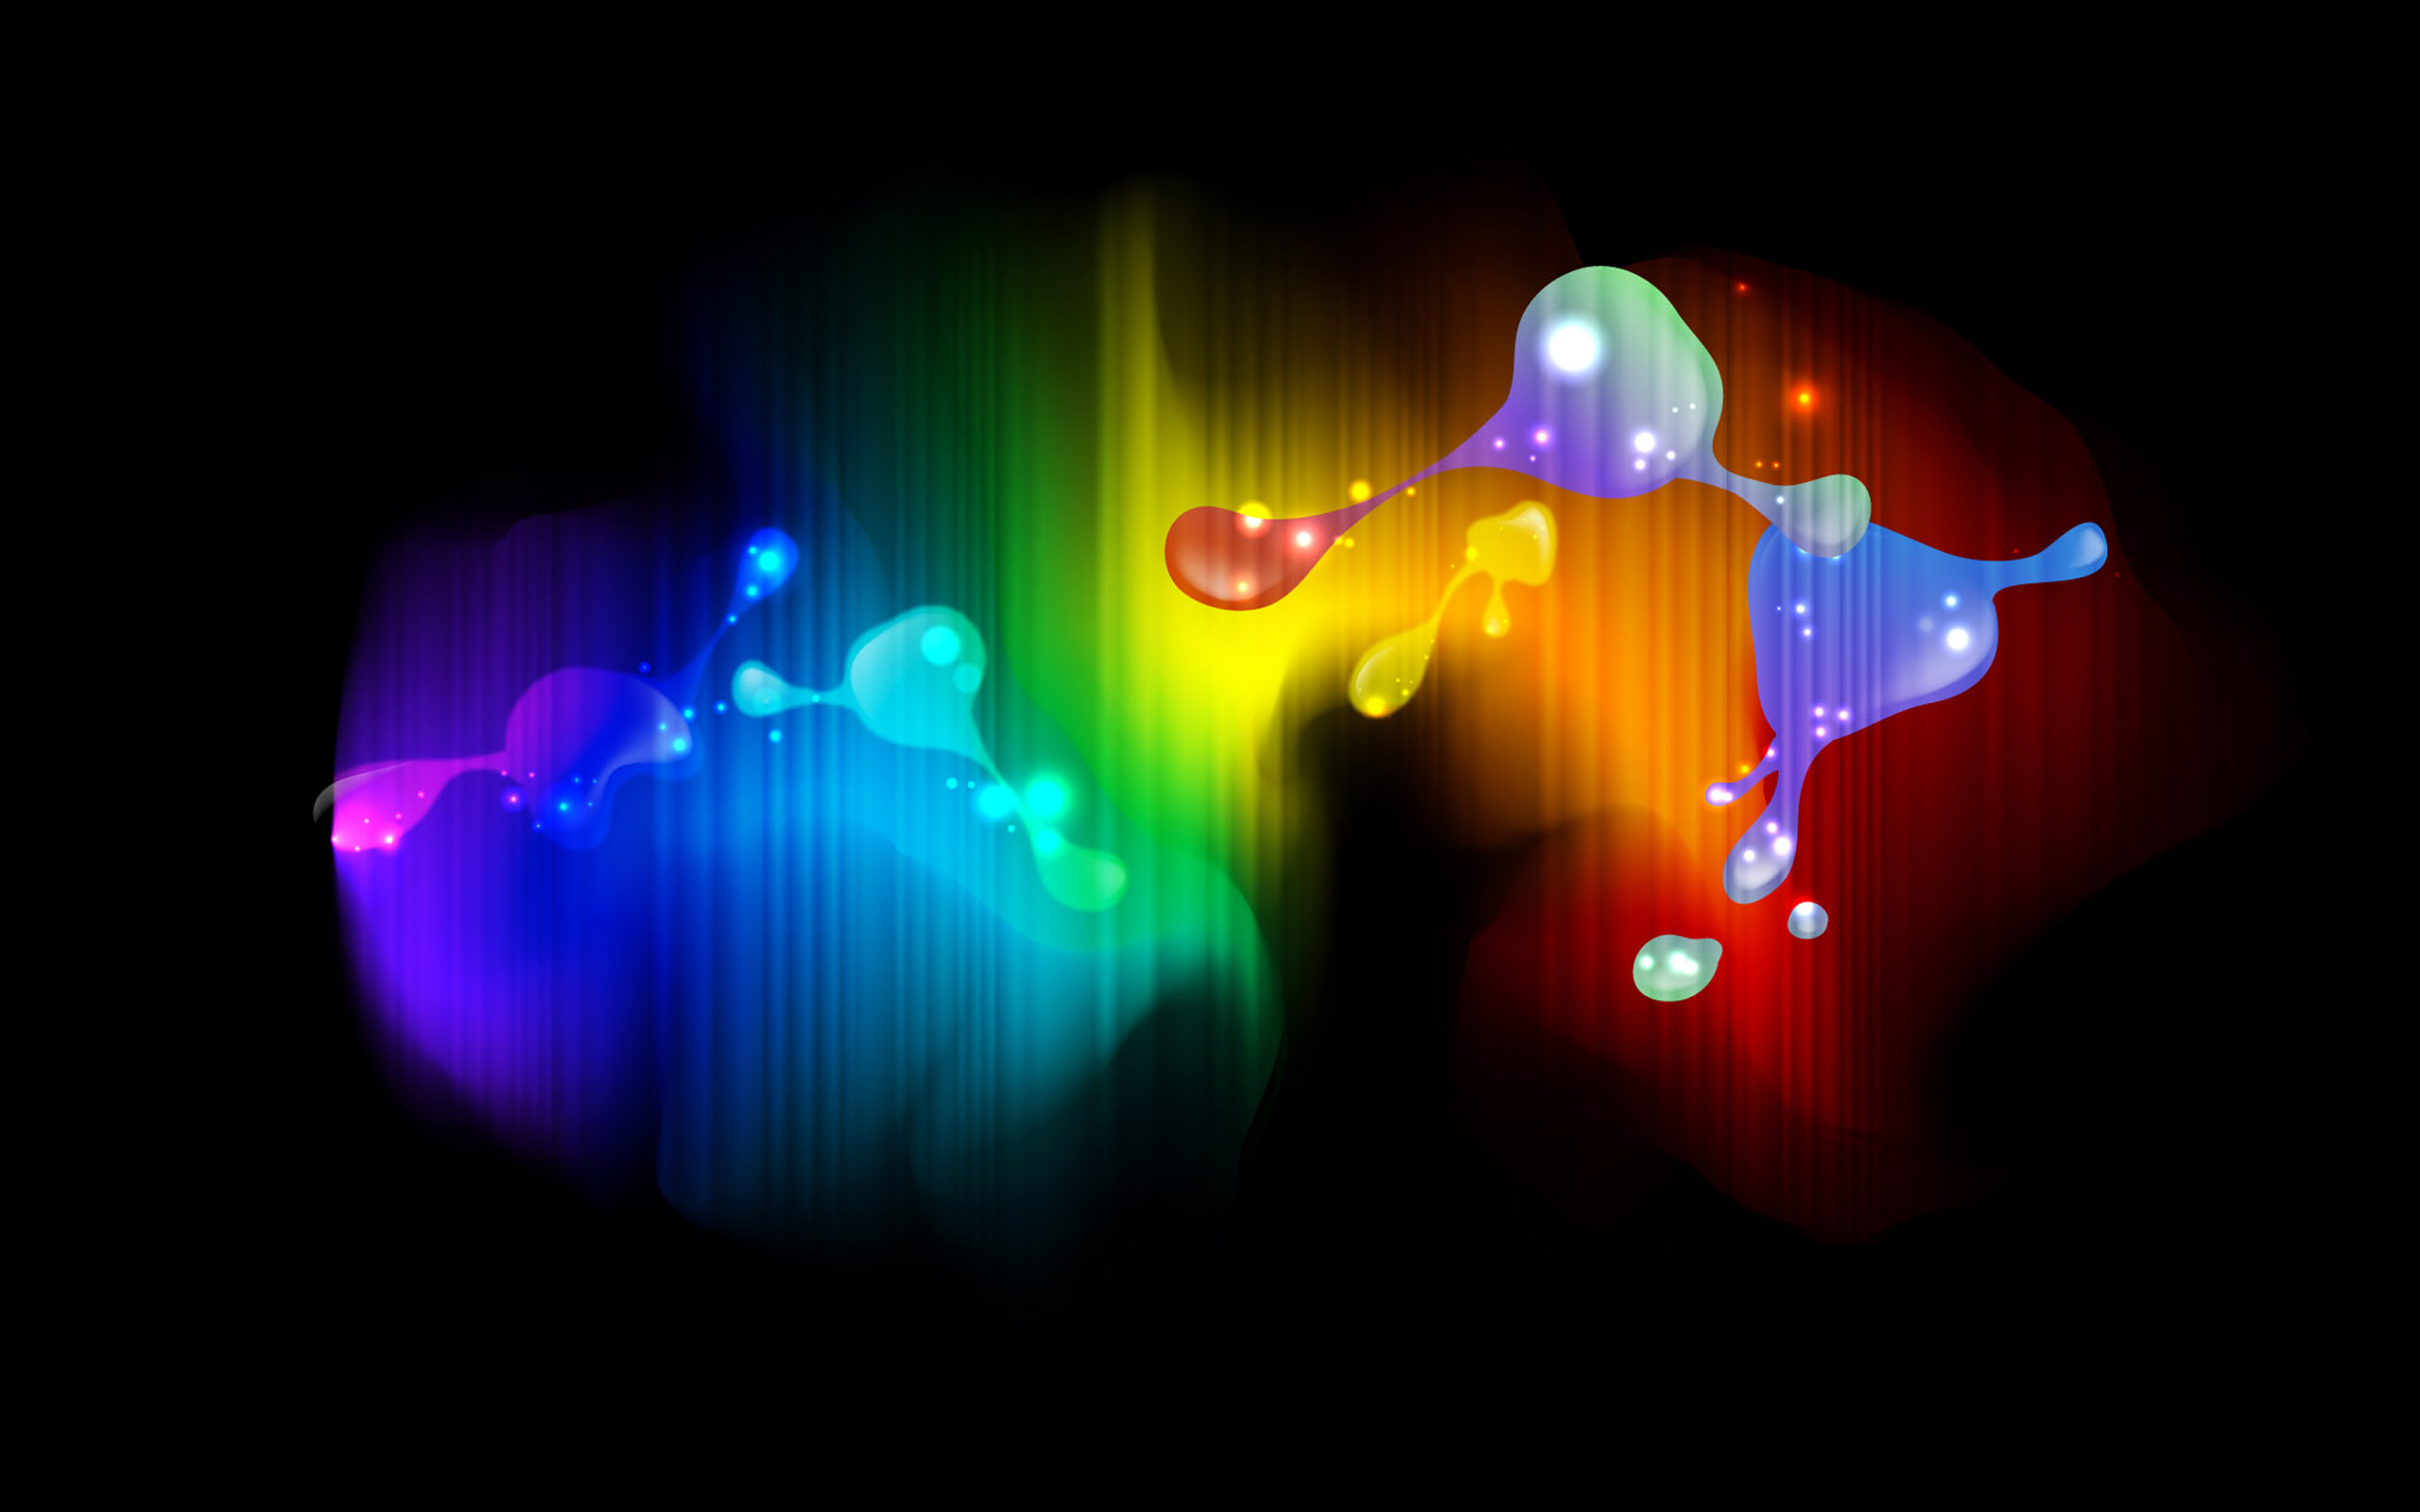 Hd Abstract Wallpapers 8474 2560x1600 Px Hdwallsource Com